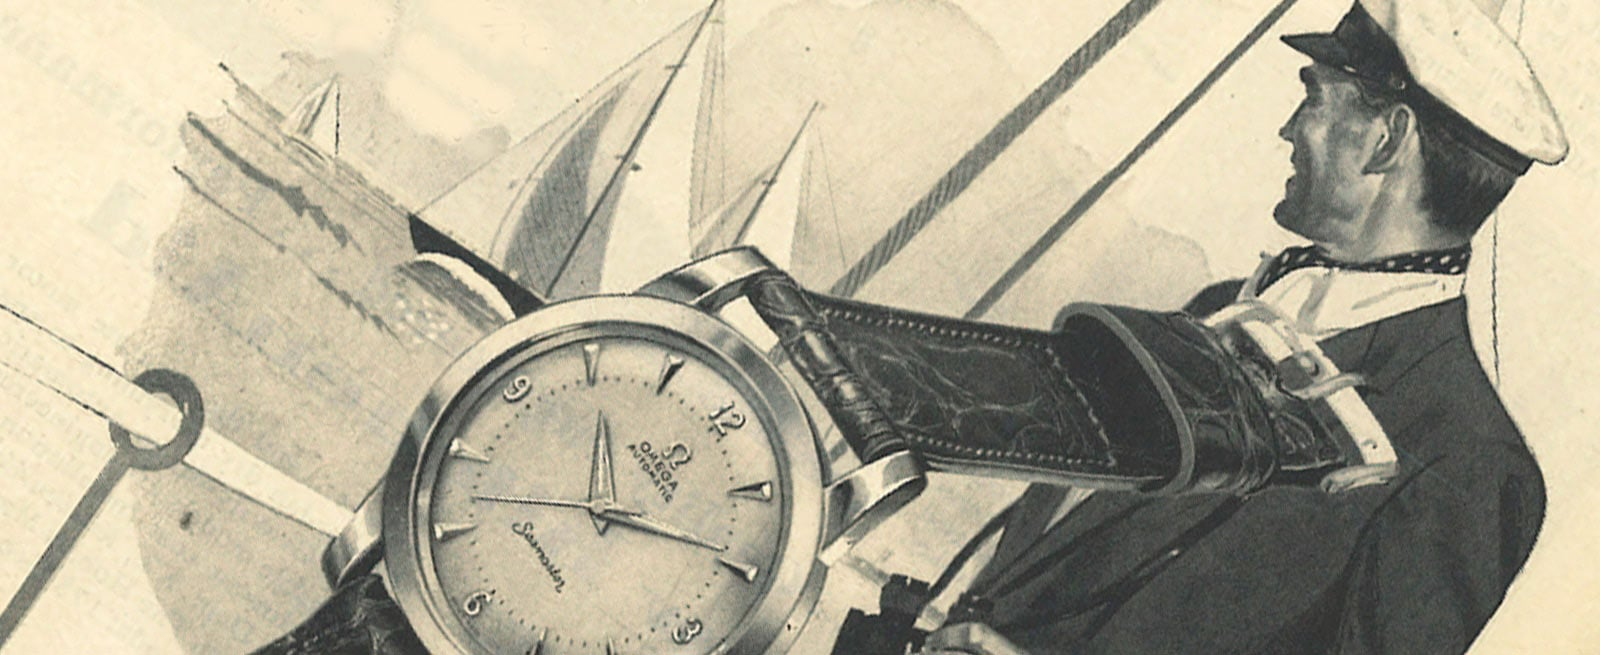 Drawing of a sailor watching boats and a Seamaster watch in the foreground